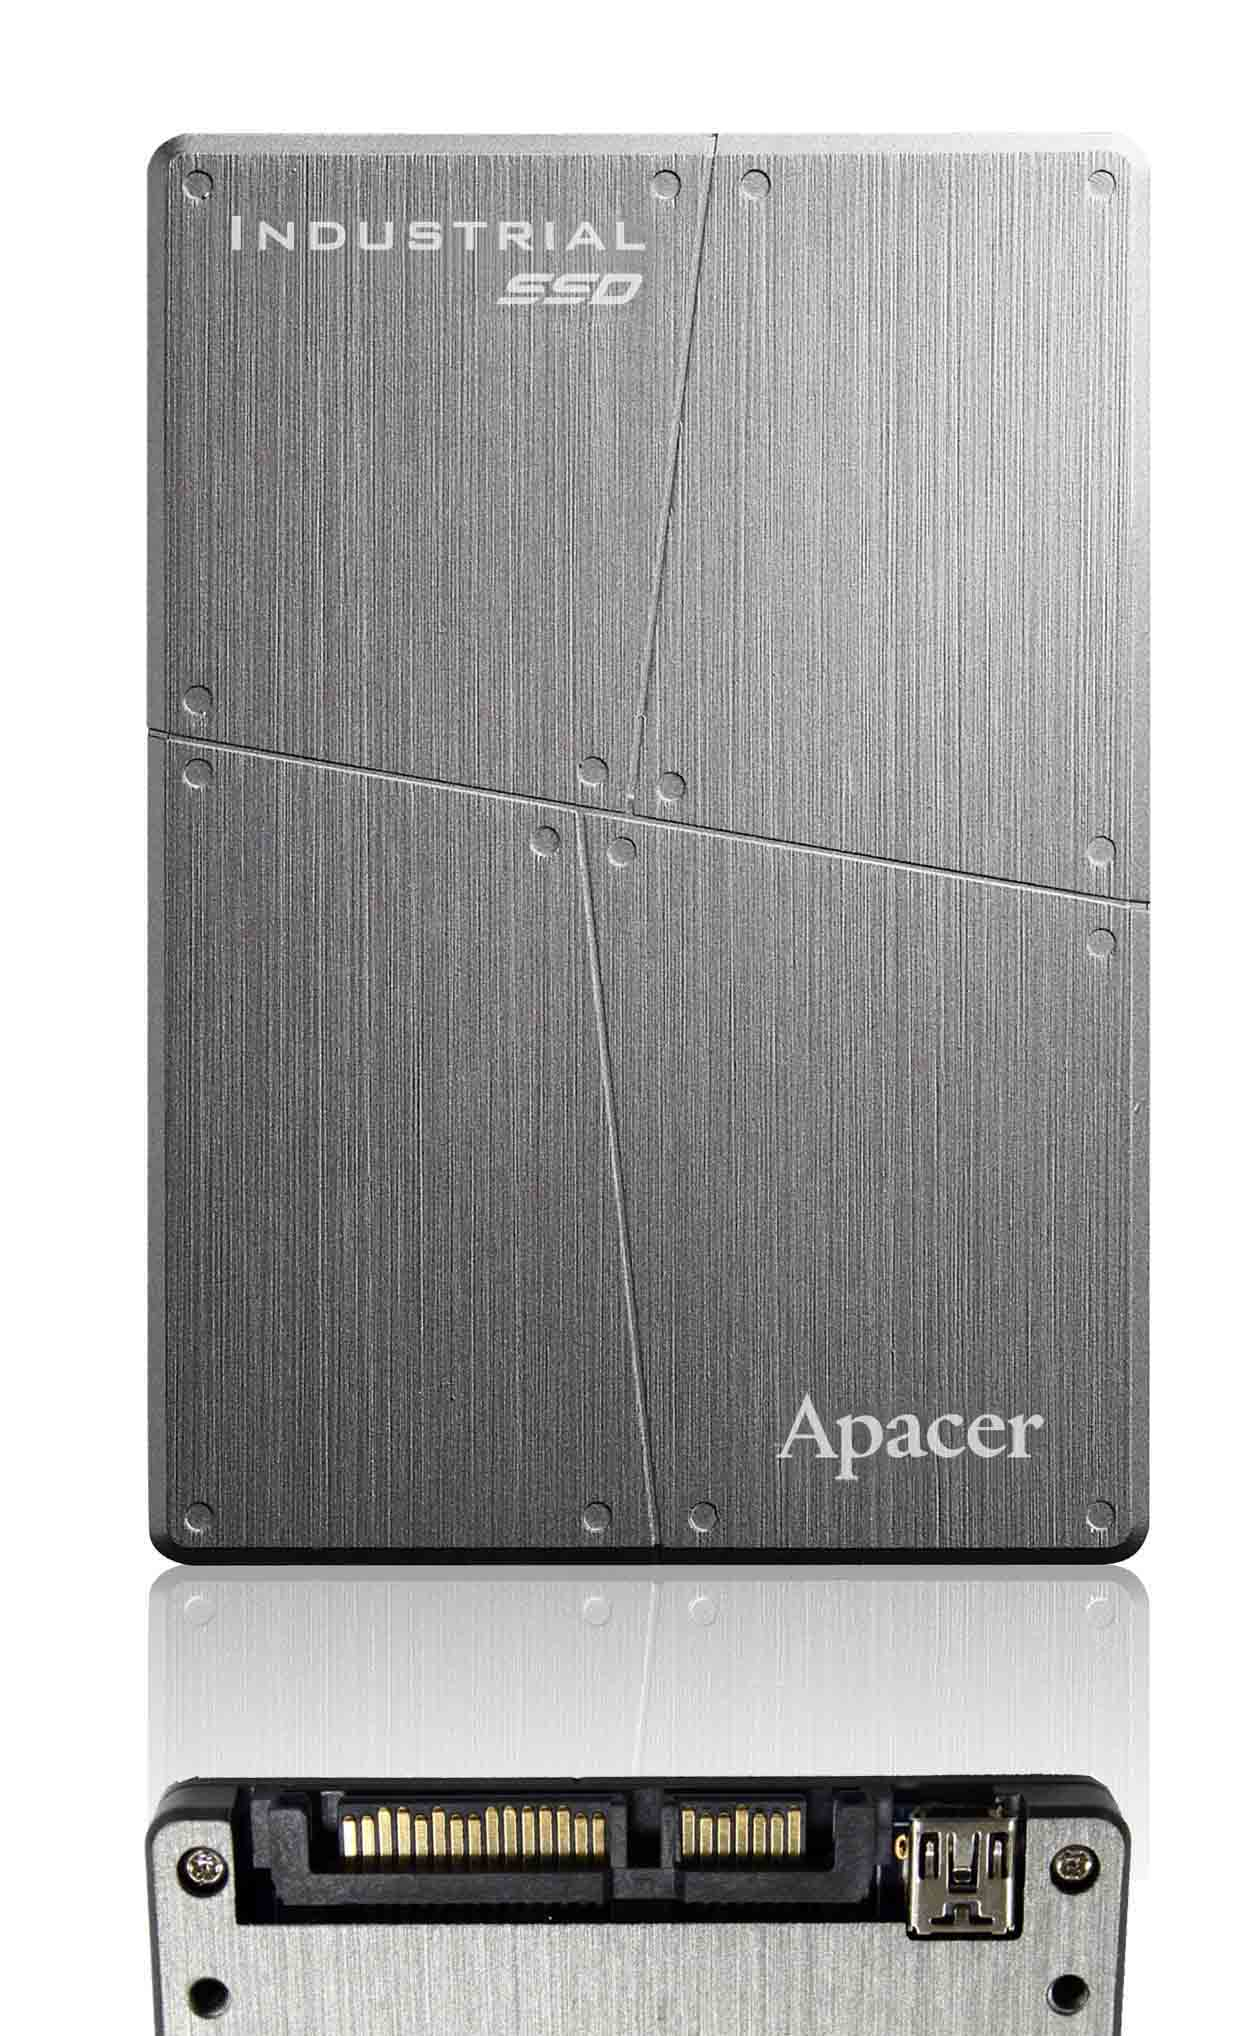 Solid State Drive / Apacer Technology Inc.